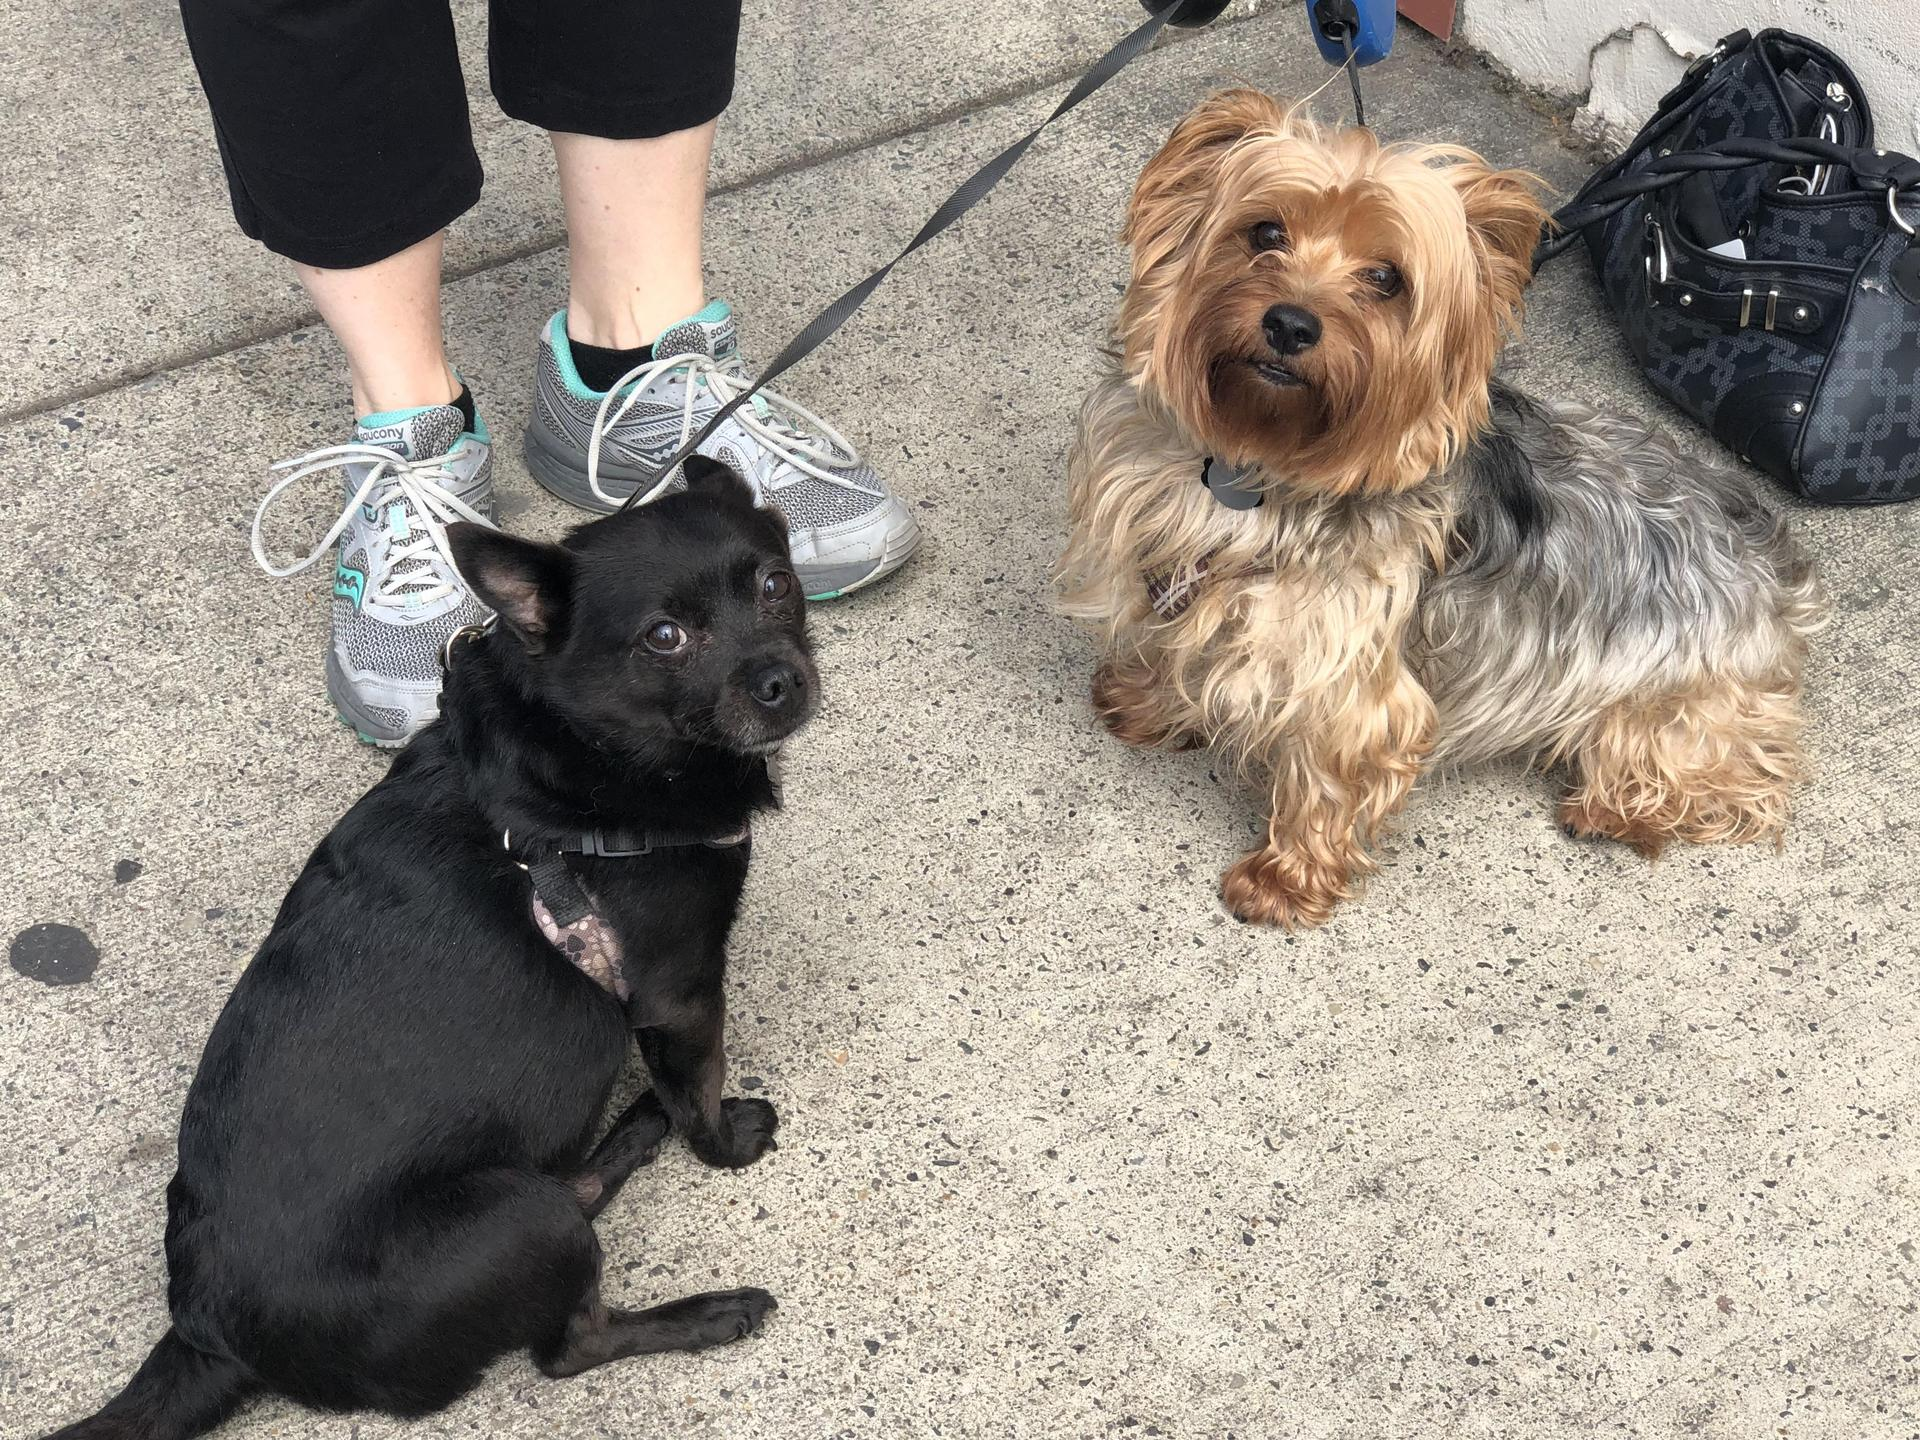 Our dogs a Schipperke named Pepe and our Yorkie named Buddy.